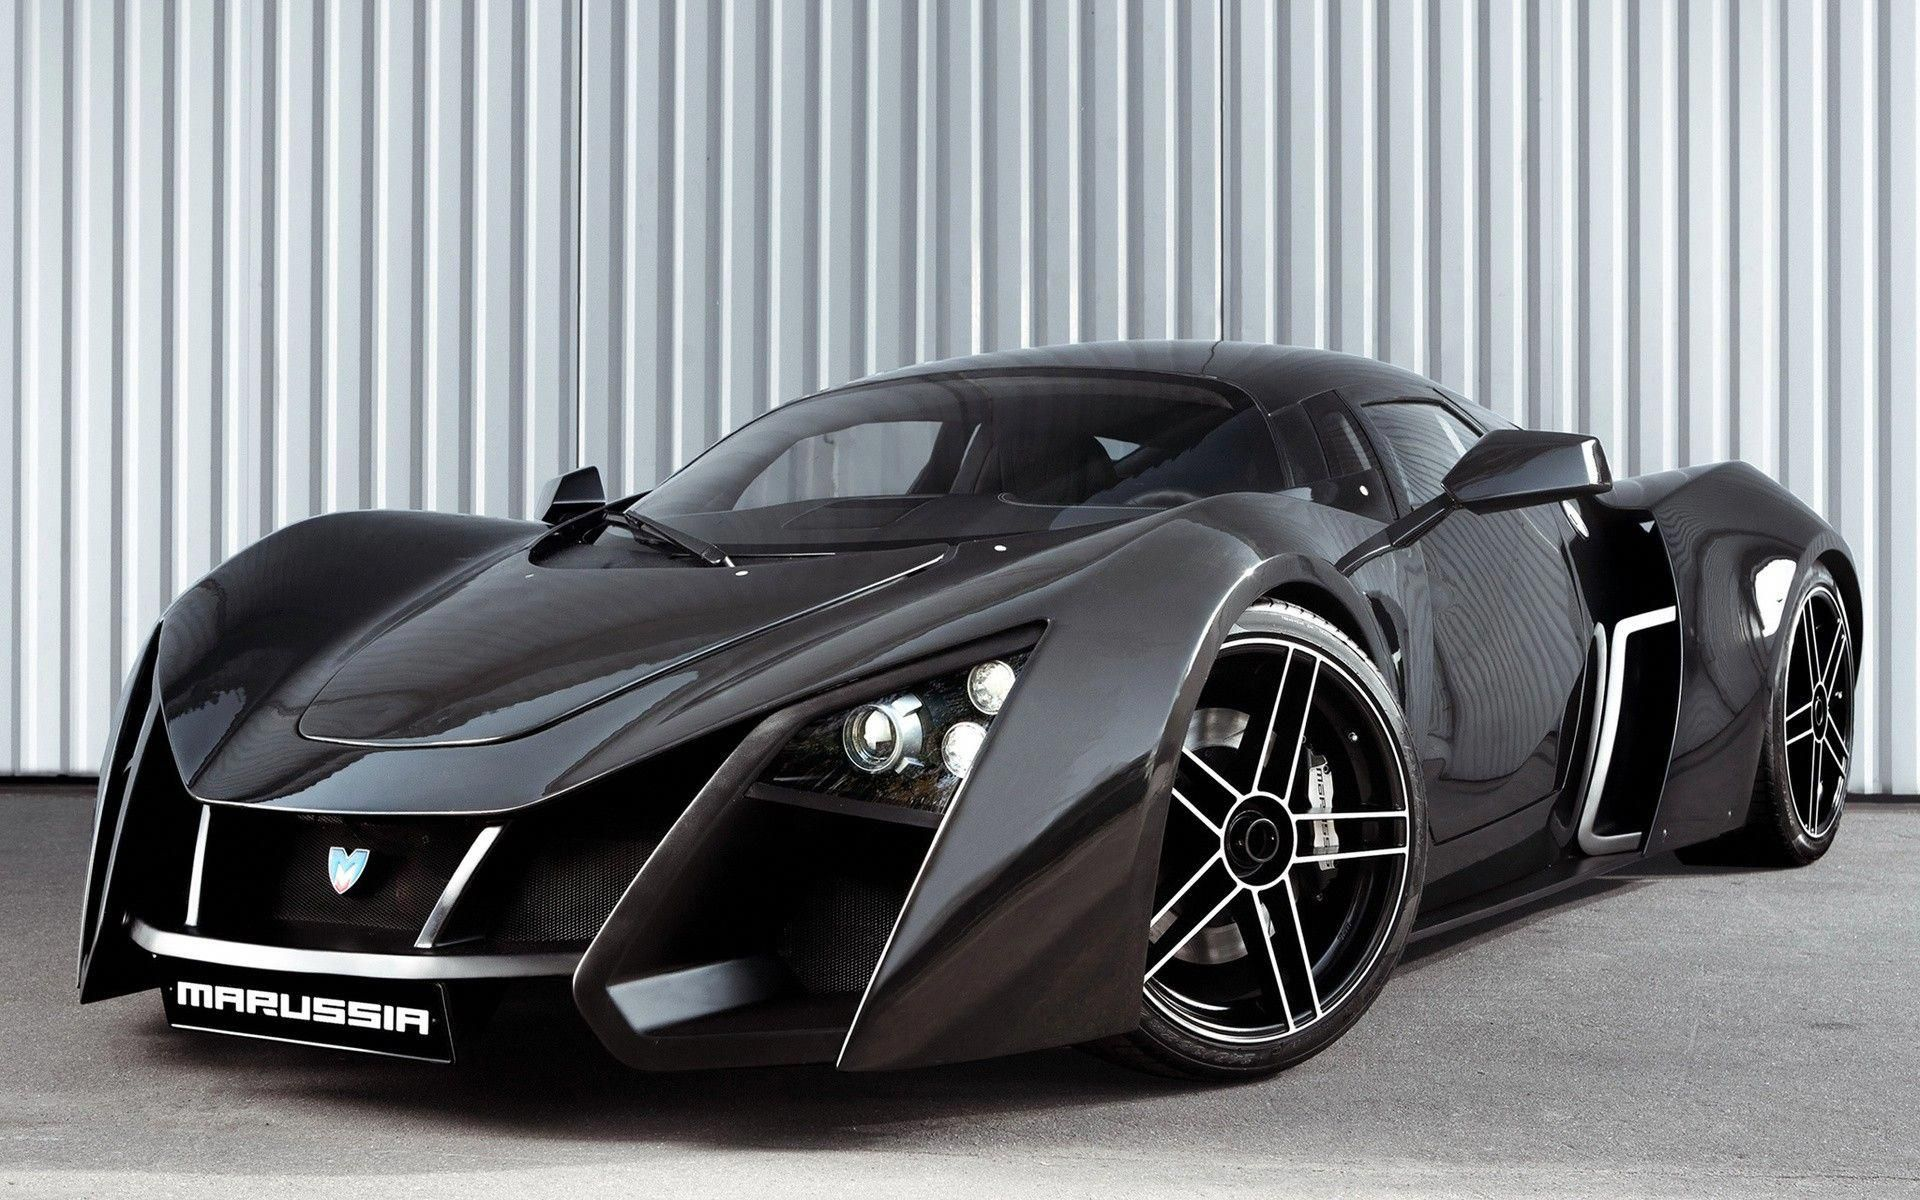 Marussia Motors Russian Marusya Ma Rusja Is A Russian Sports Car Manufacturer Founded In 2007 It Was The First In 2020 Super Cars Sports Cars Luxury Amazing Cars